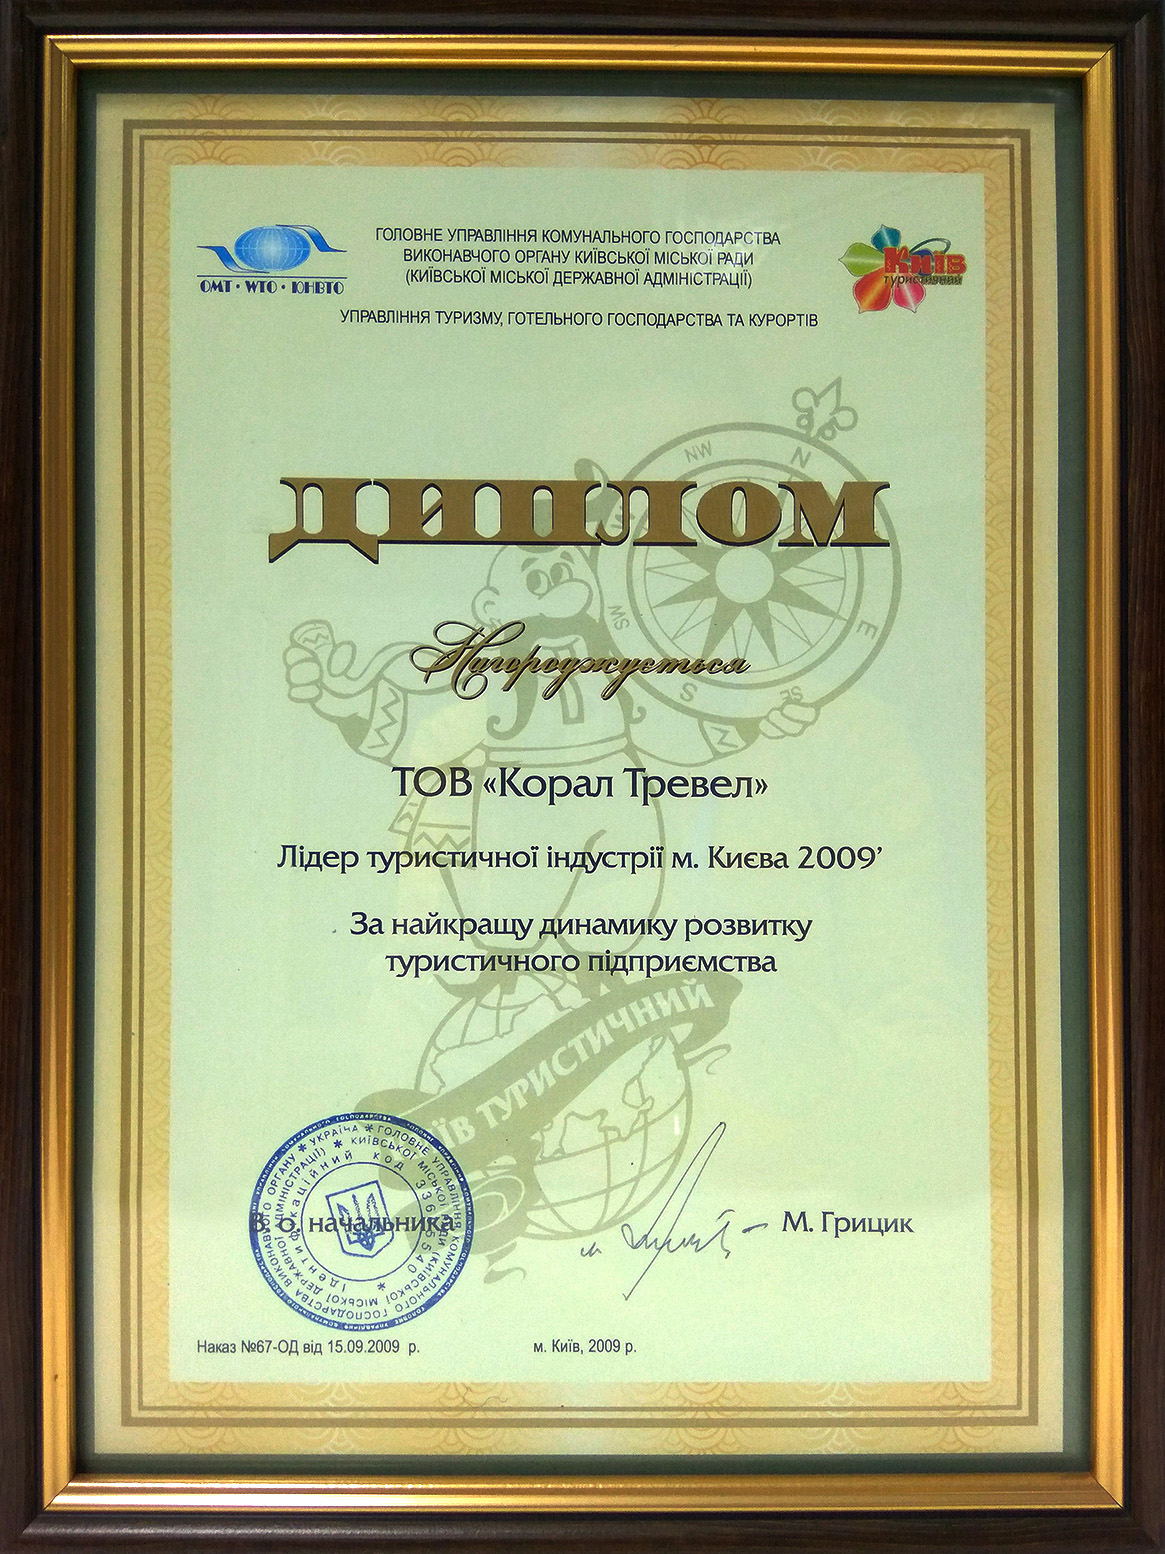 3 DIPLOMA Leader of tourism industry, Kyiv 2009